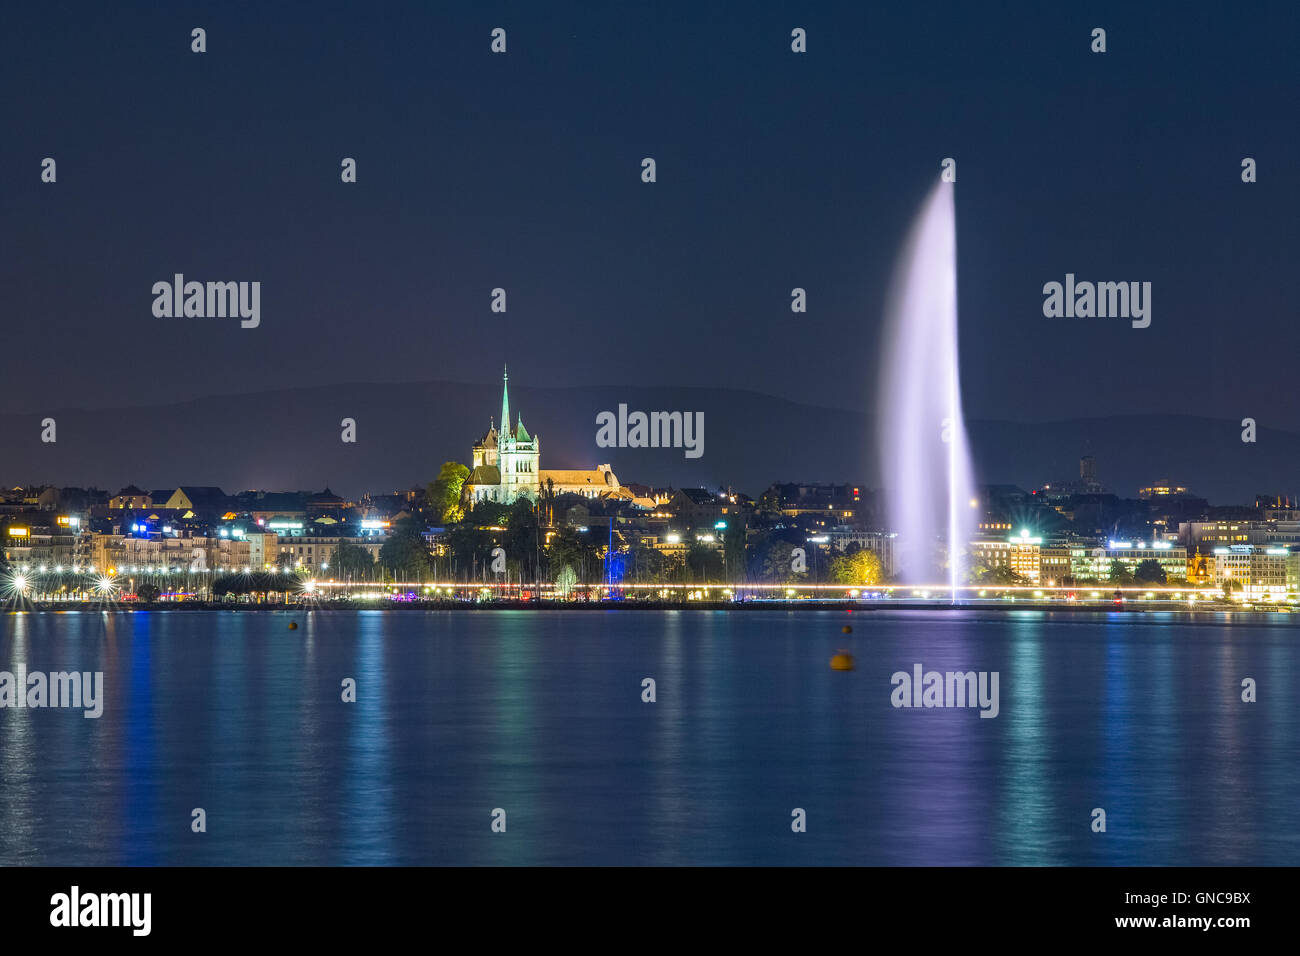 Geneva skyline and fountain at night. - Stock Image